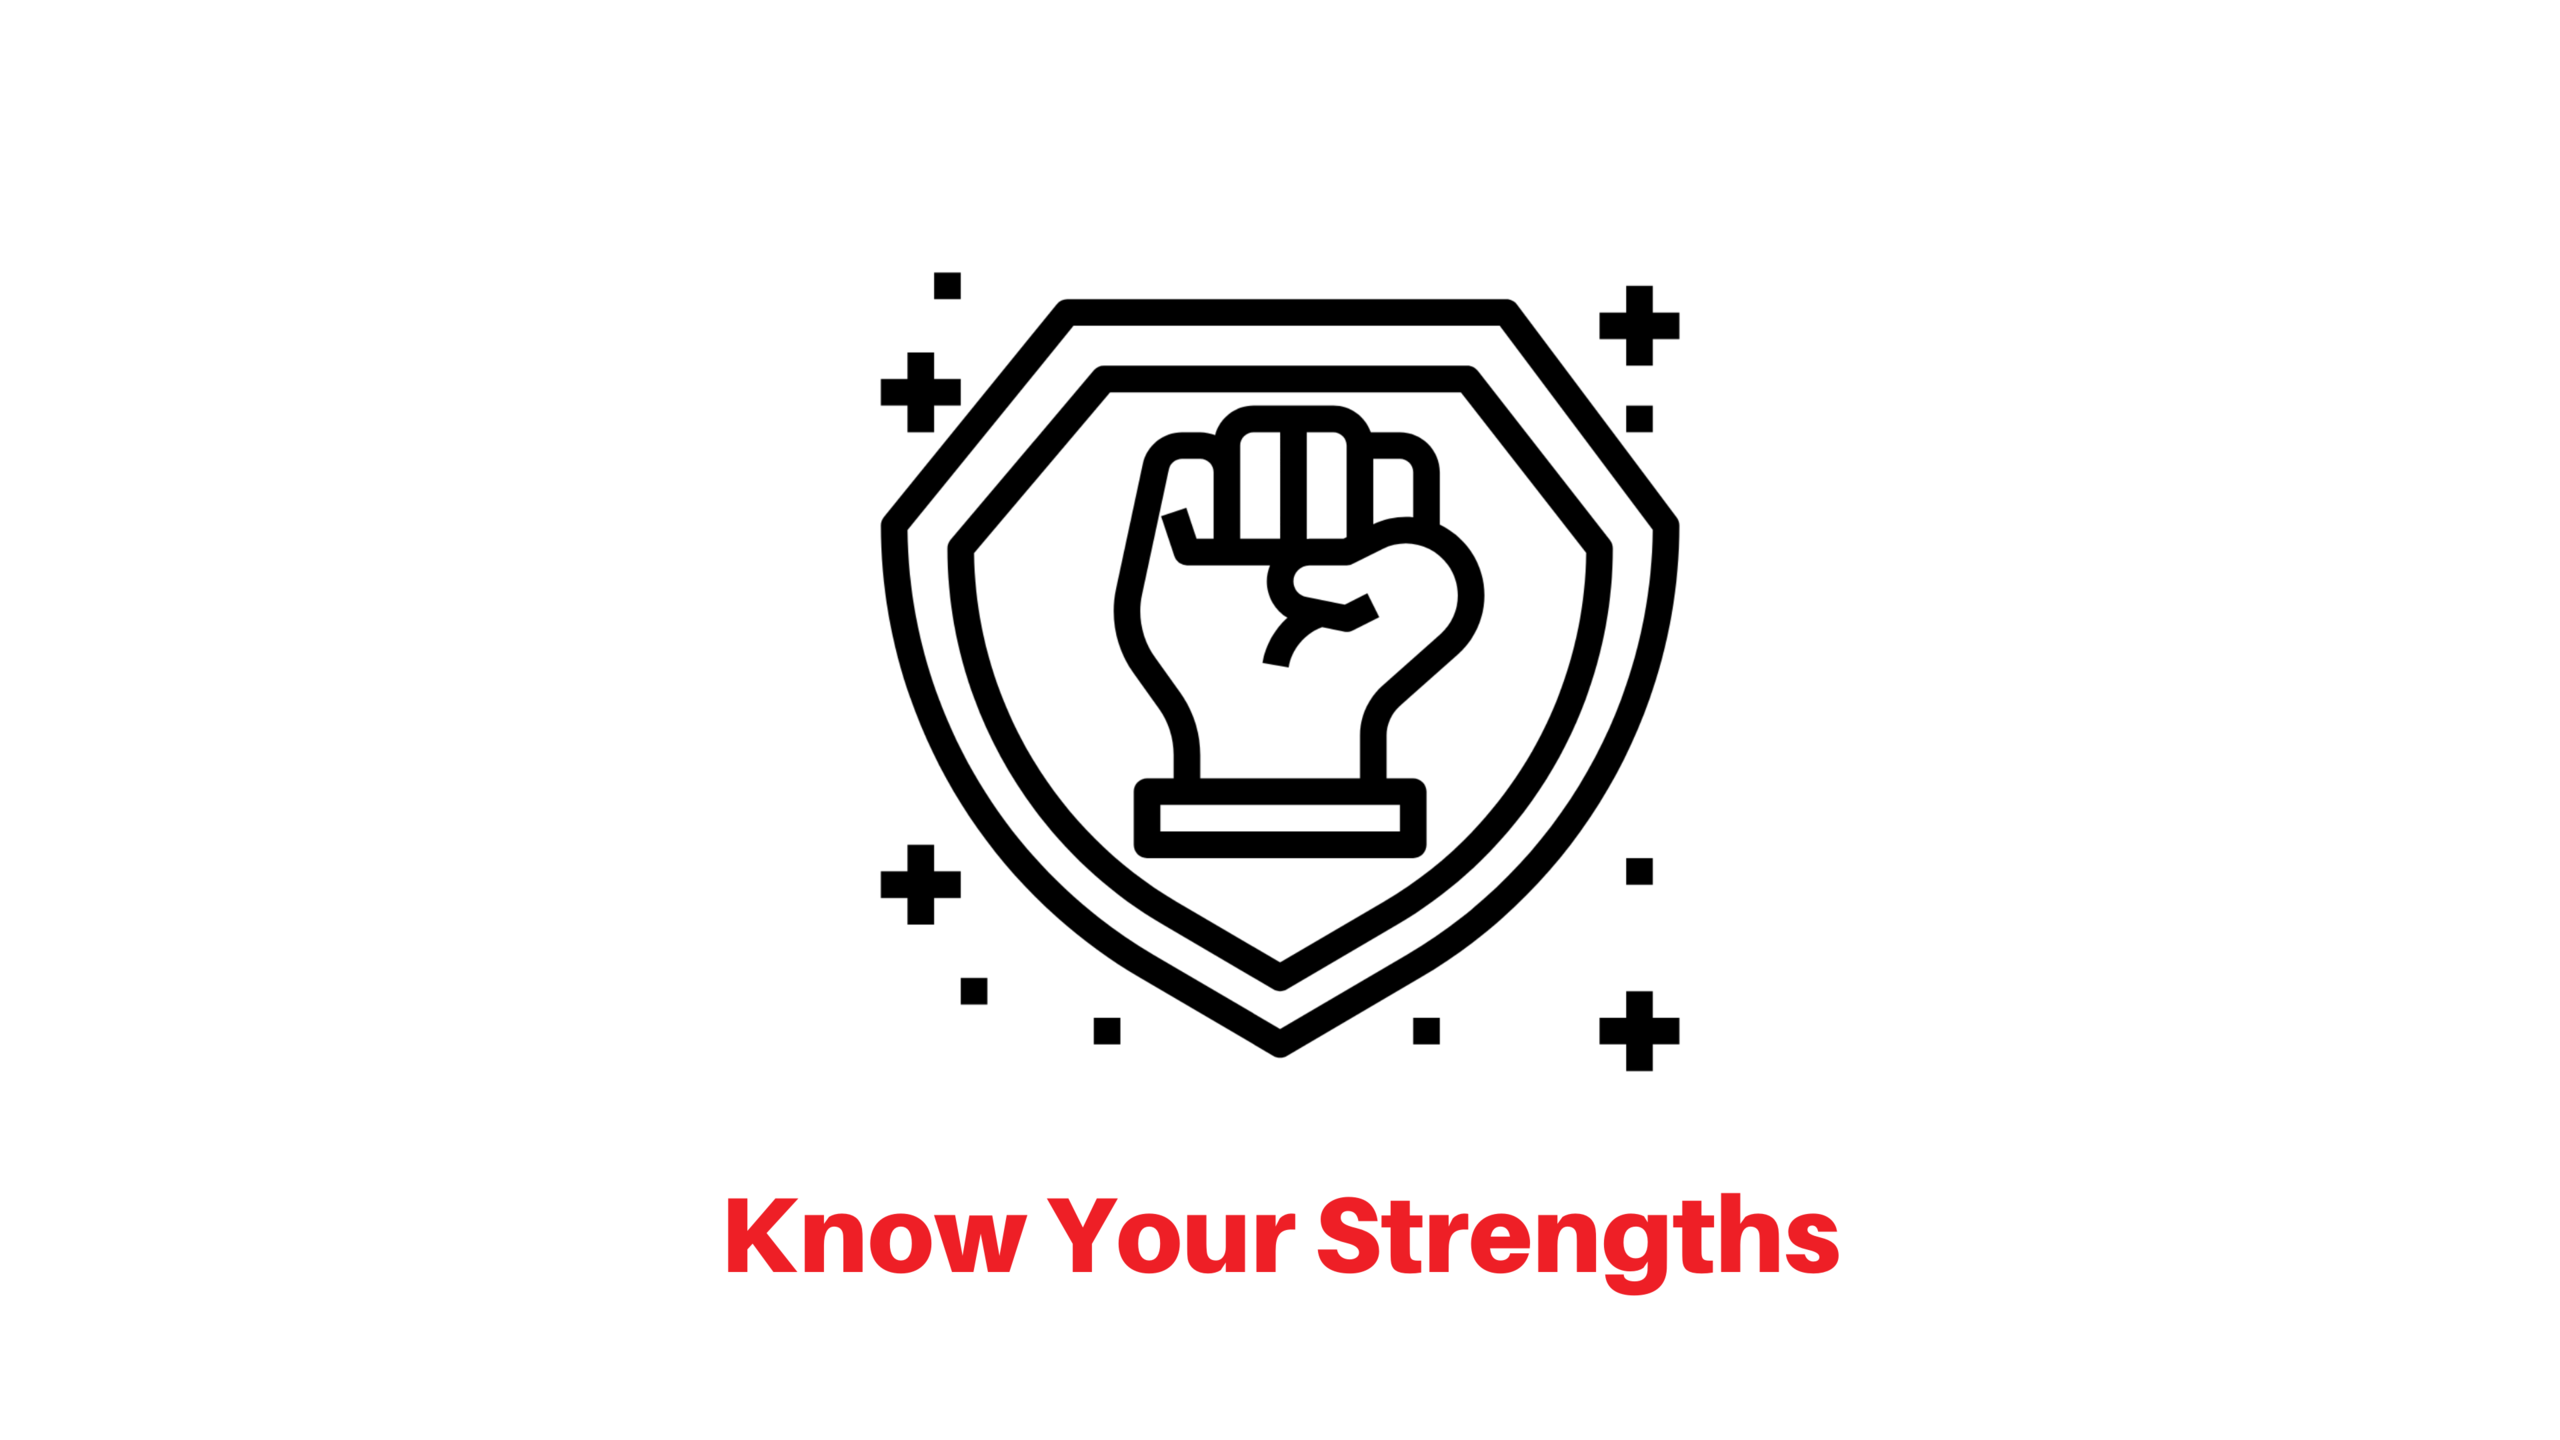 Know your strengths icon